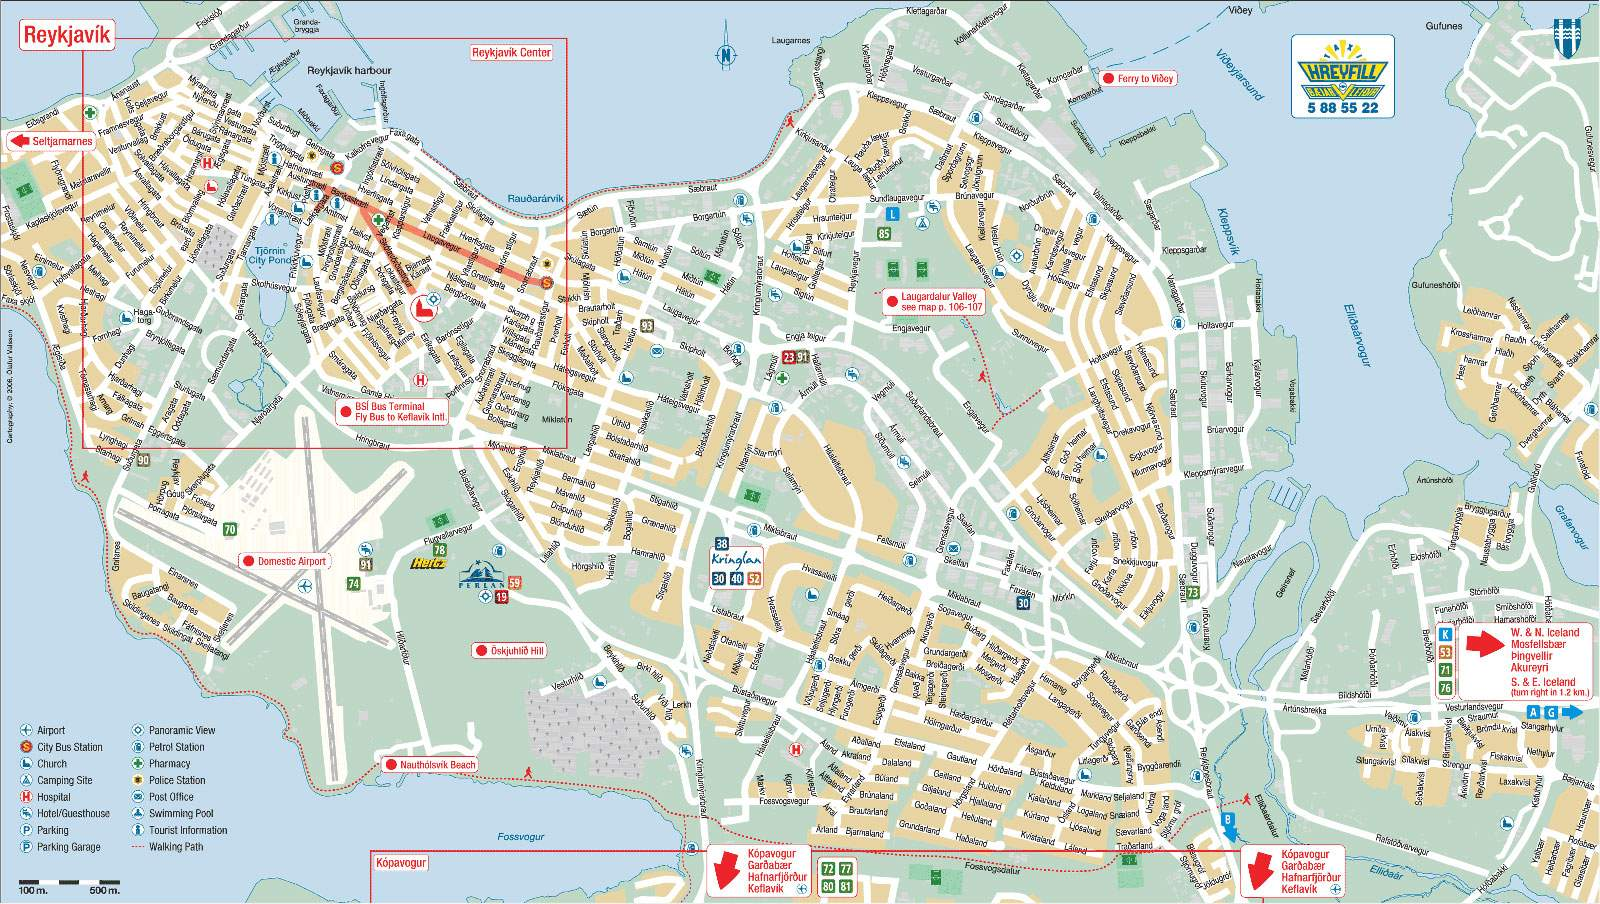 Detailed Map Of Reykjavik 2